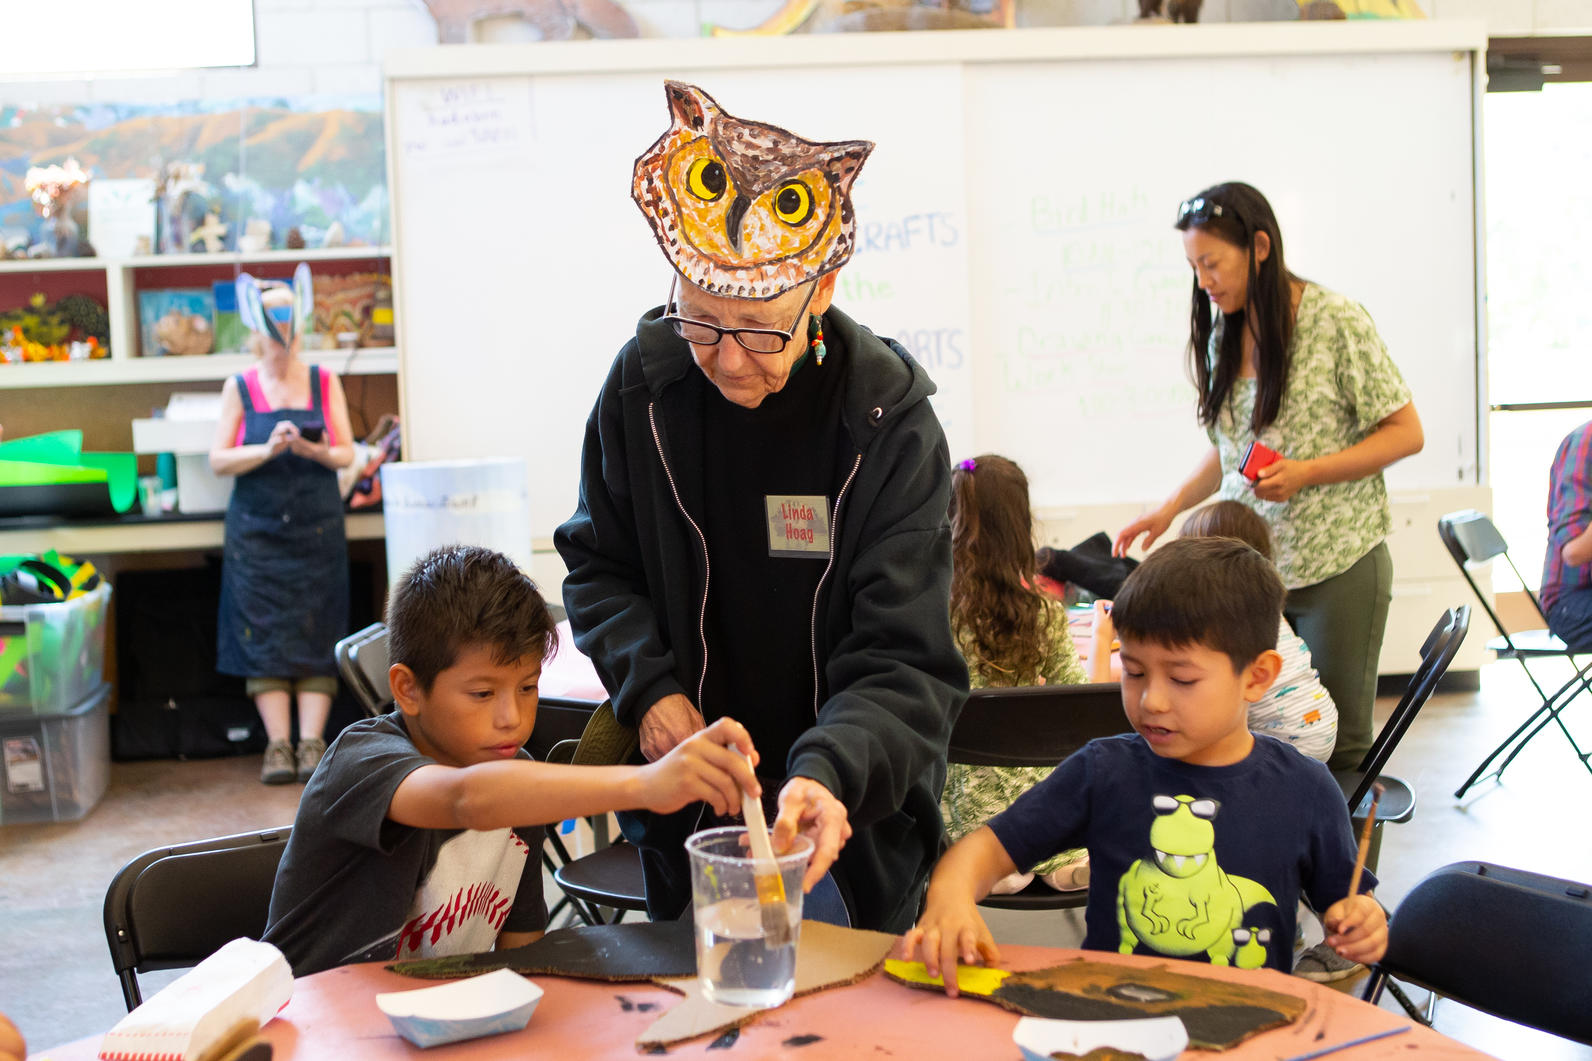 Member of Arroyo Arts Collective helps kids create bird hats in celebration of the Bird LA Day Festival.